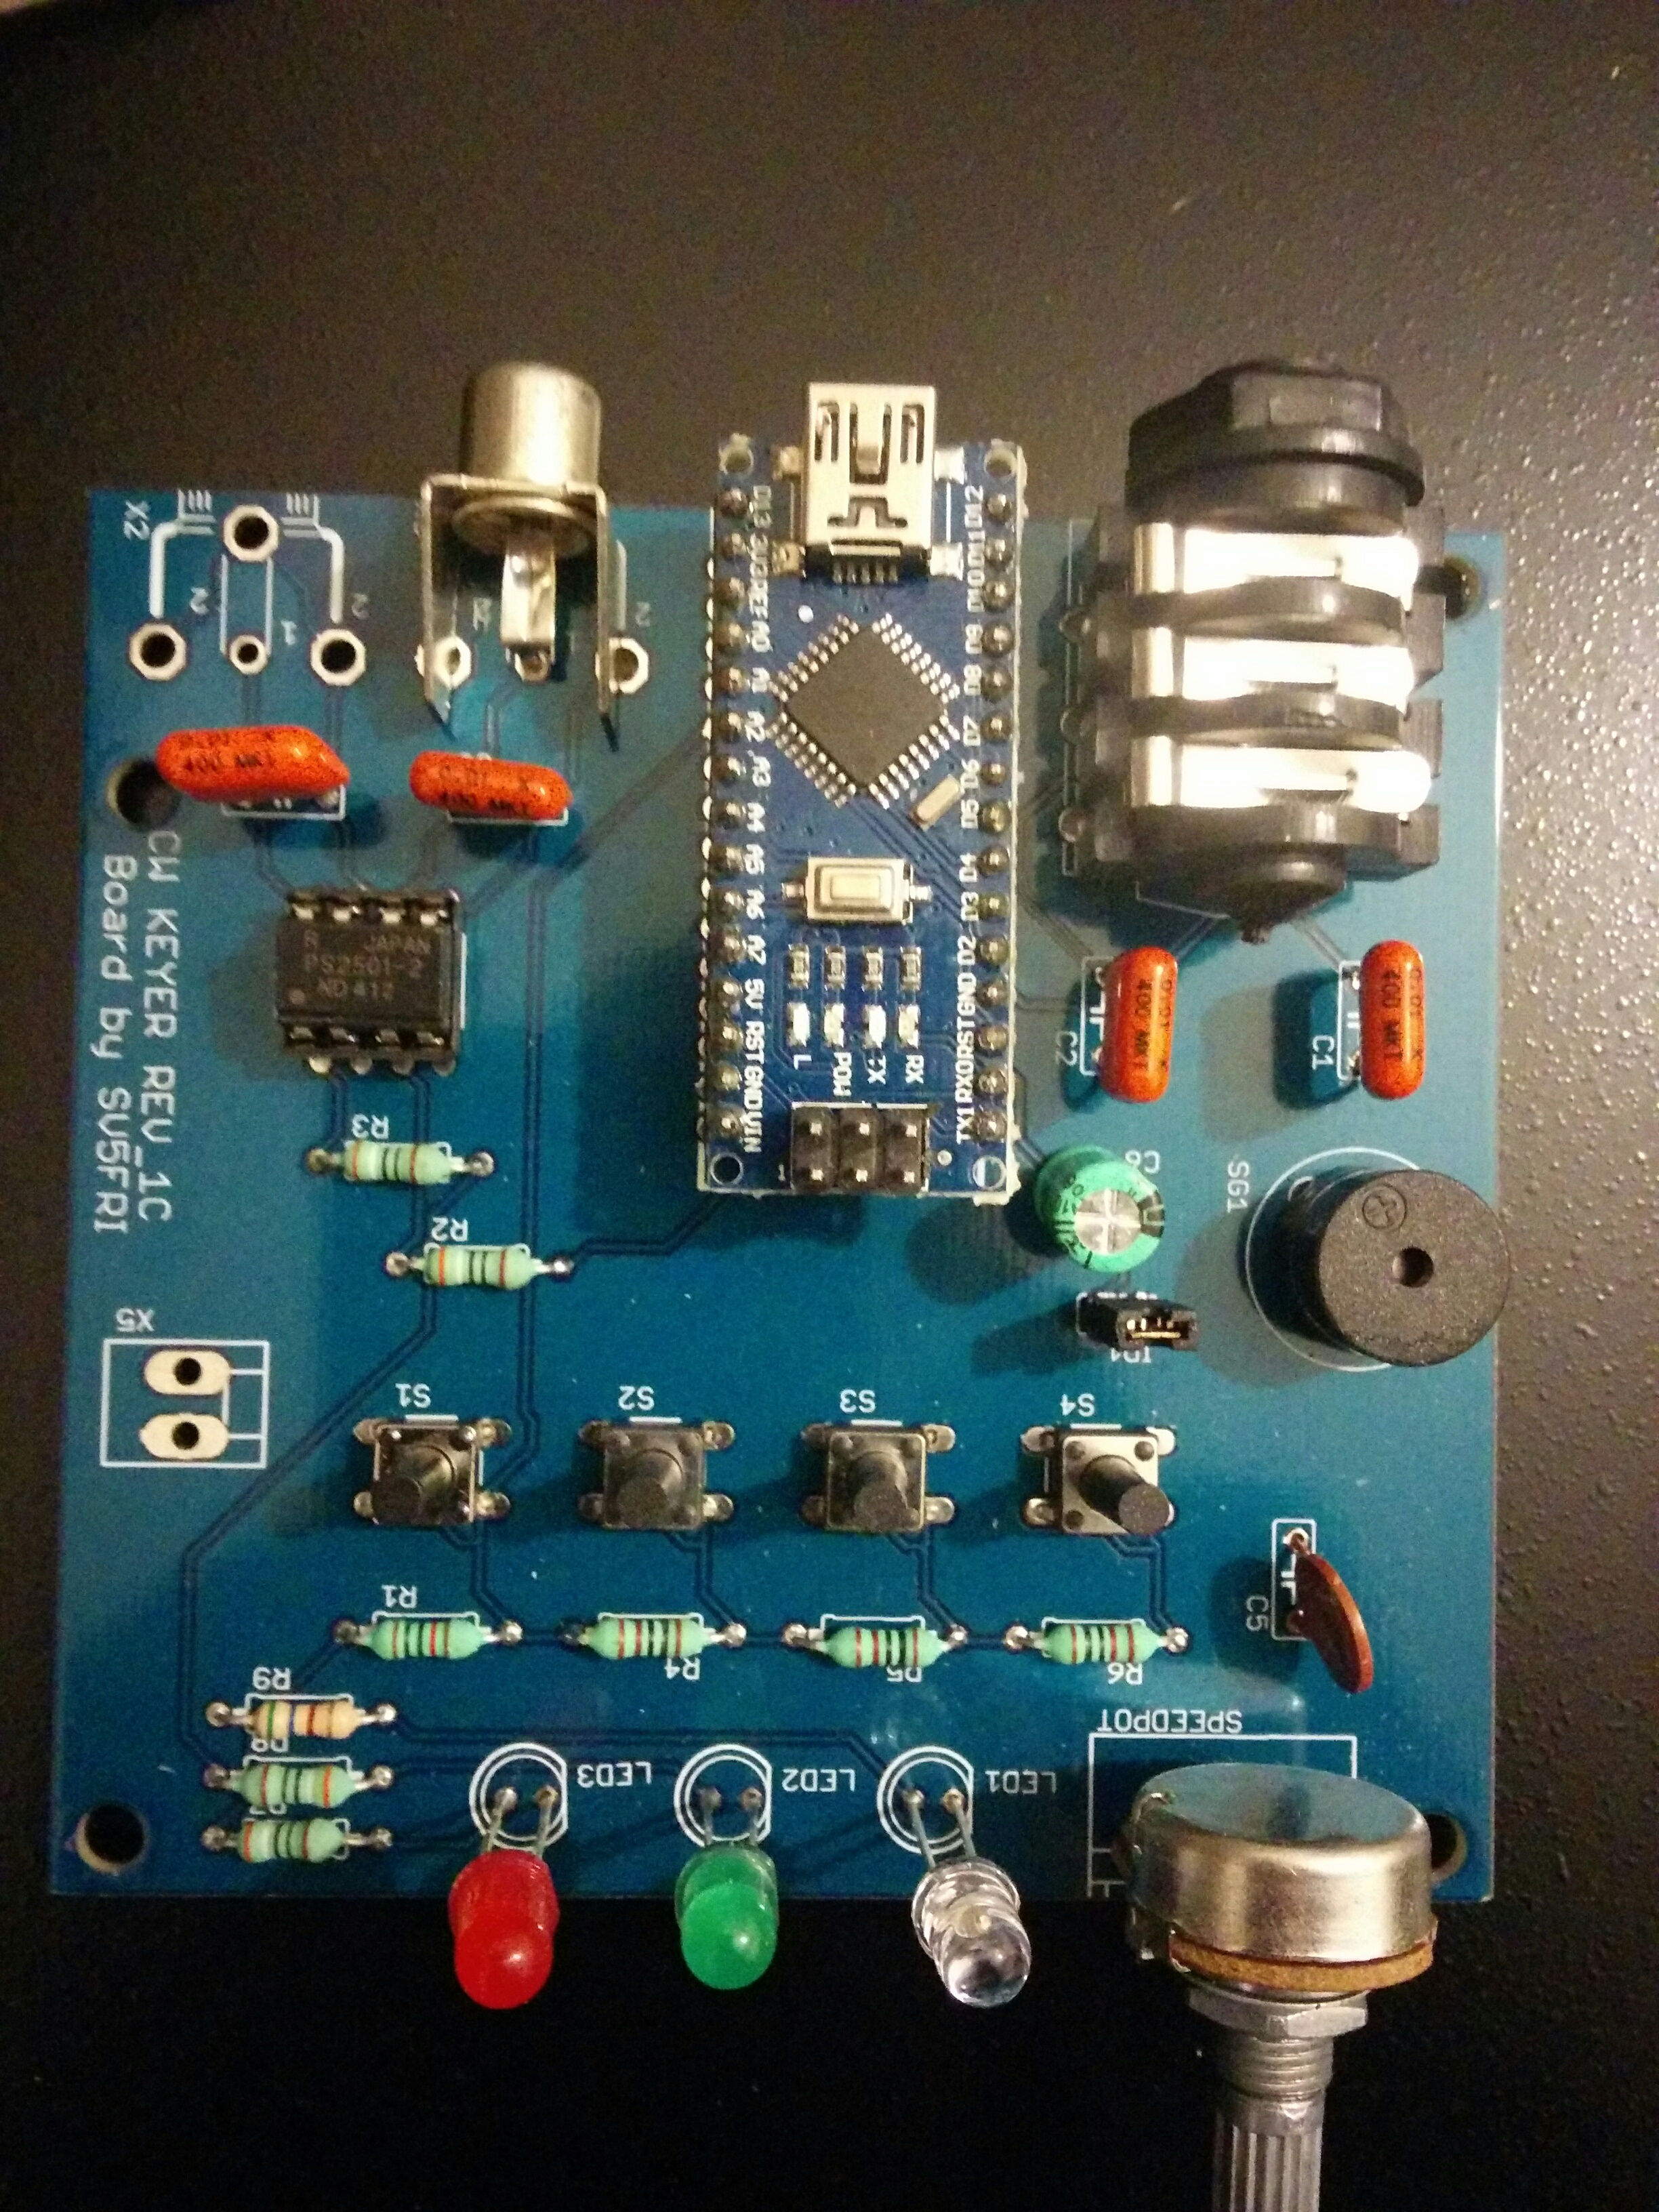 CW Keyer with Arduino Nano – SV5FRI